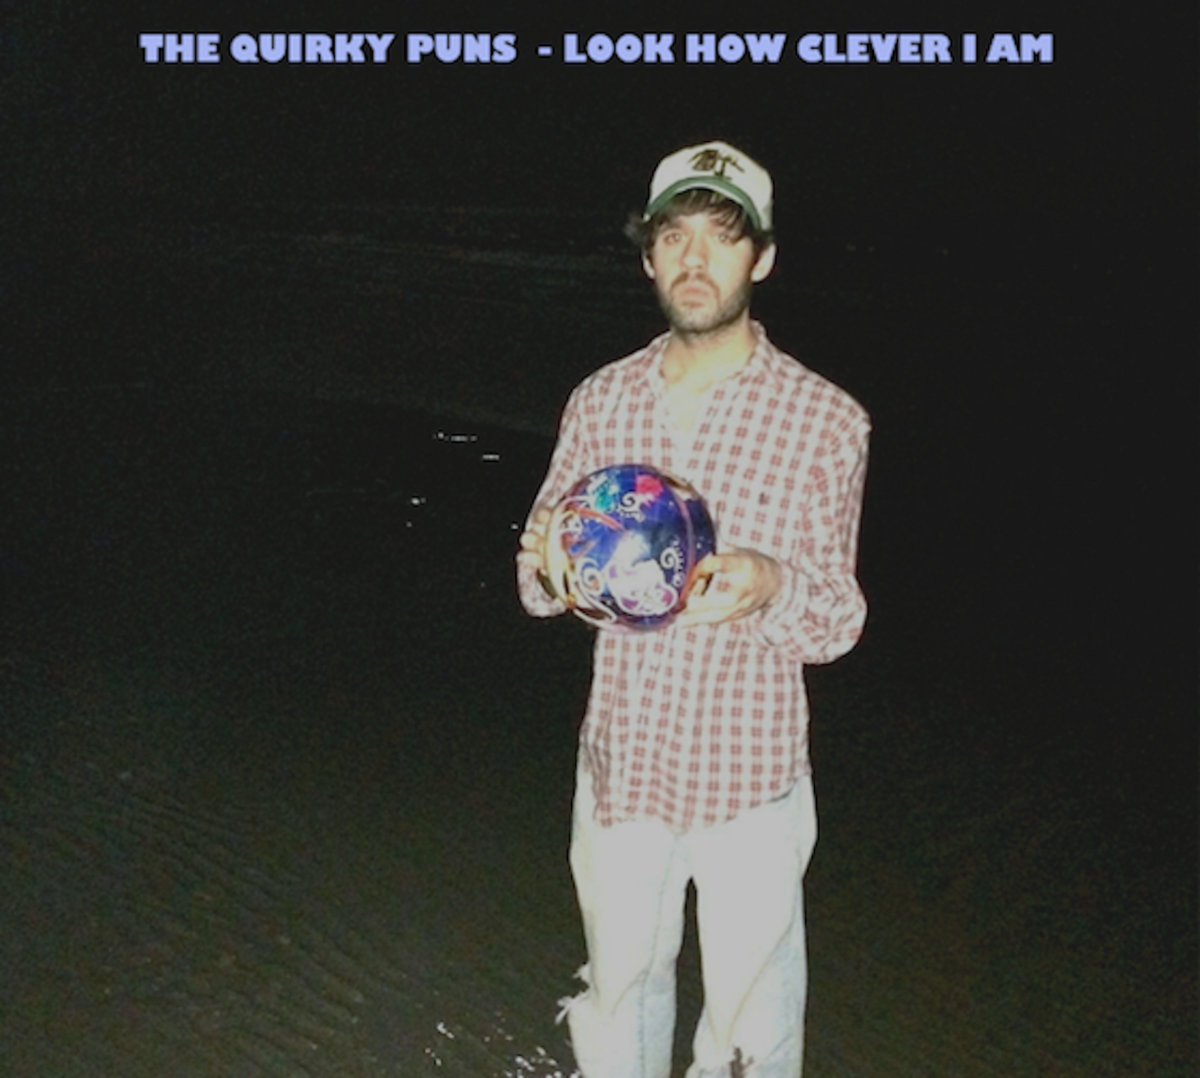 Look How Clever I Am | The Quirky Puns